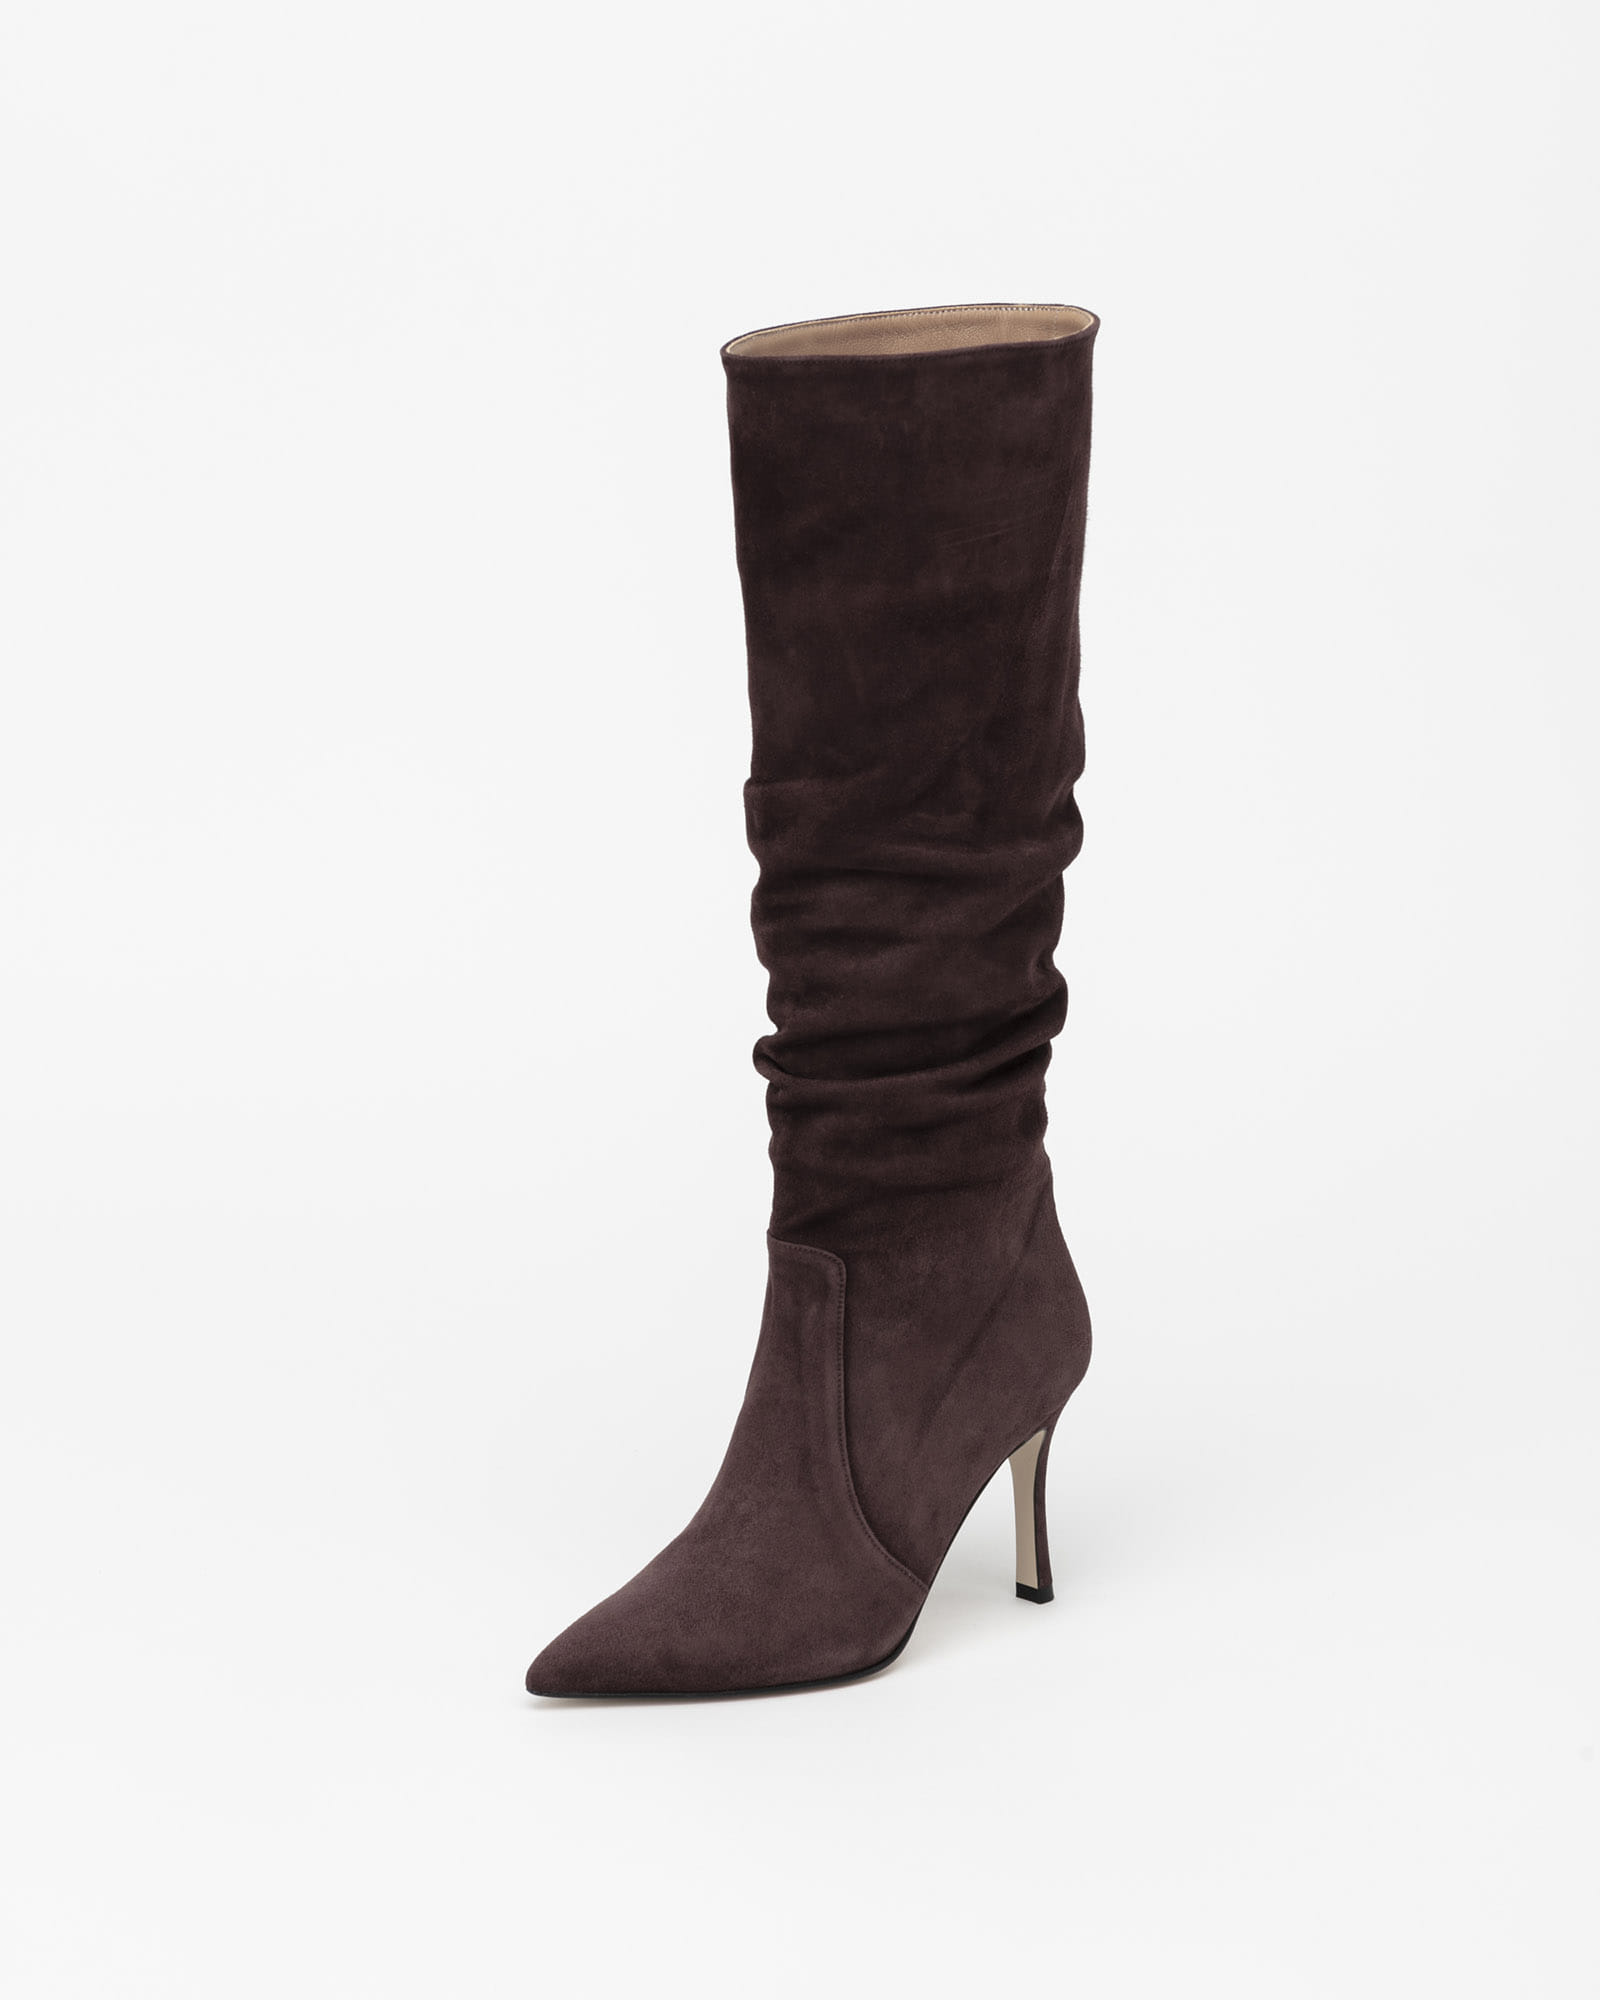 Arine Shirring Boots in Dark Brown Suede